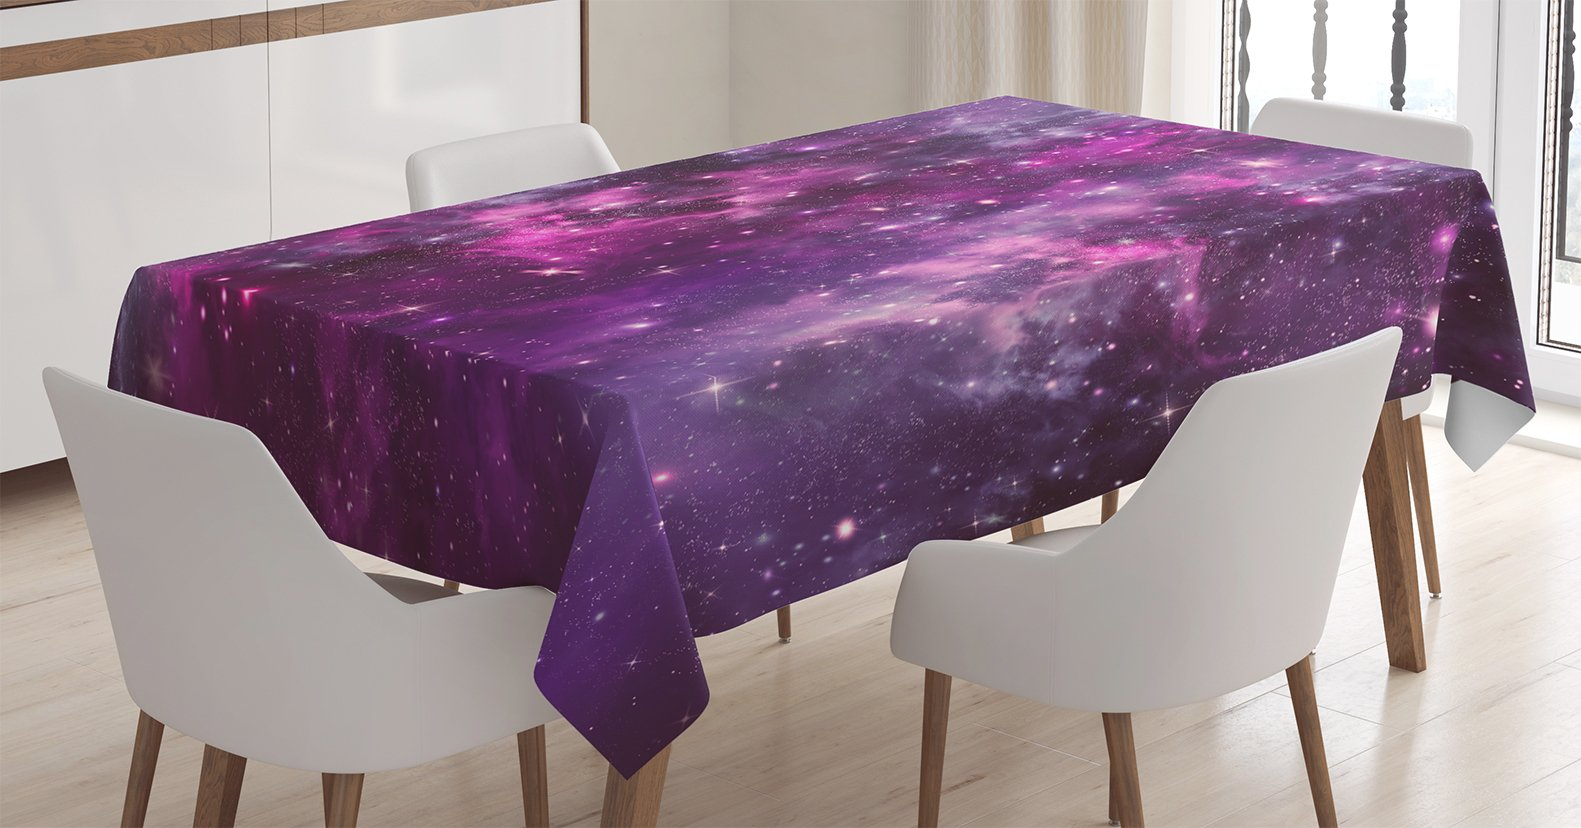 Ambesonne Purple Decor Tablecloth, Nebula Gas Cloud Deep Dark in Outer Space with Star Clusters Galaxy Infinity Solar Sky Print, Rectangular Table Cover for Dining Room Kitchen, 52x70 Inches, Purple